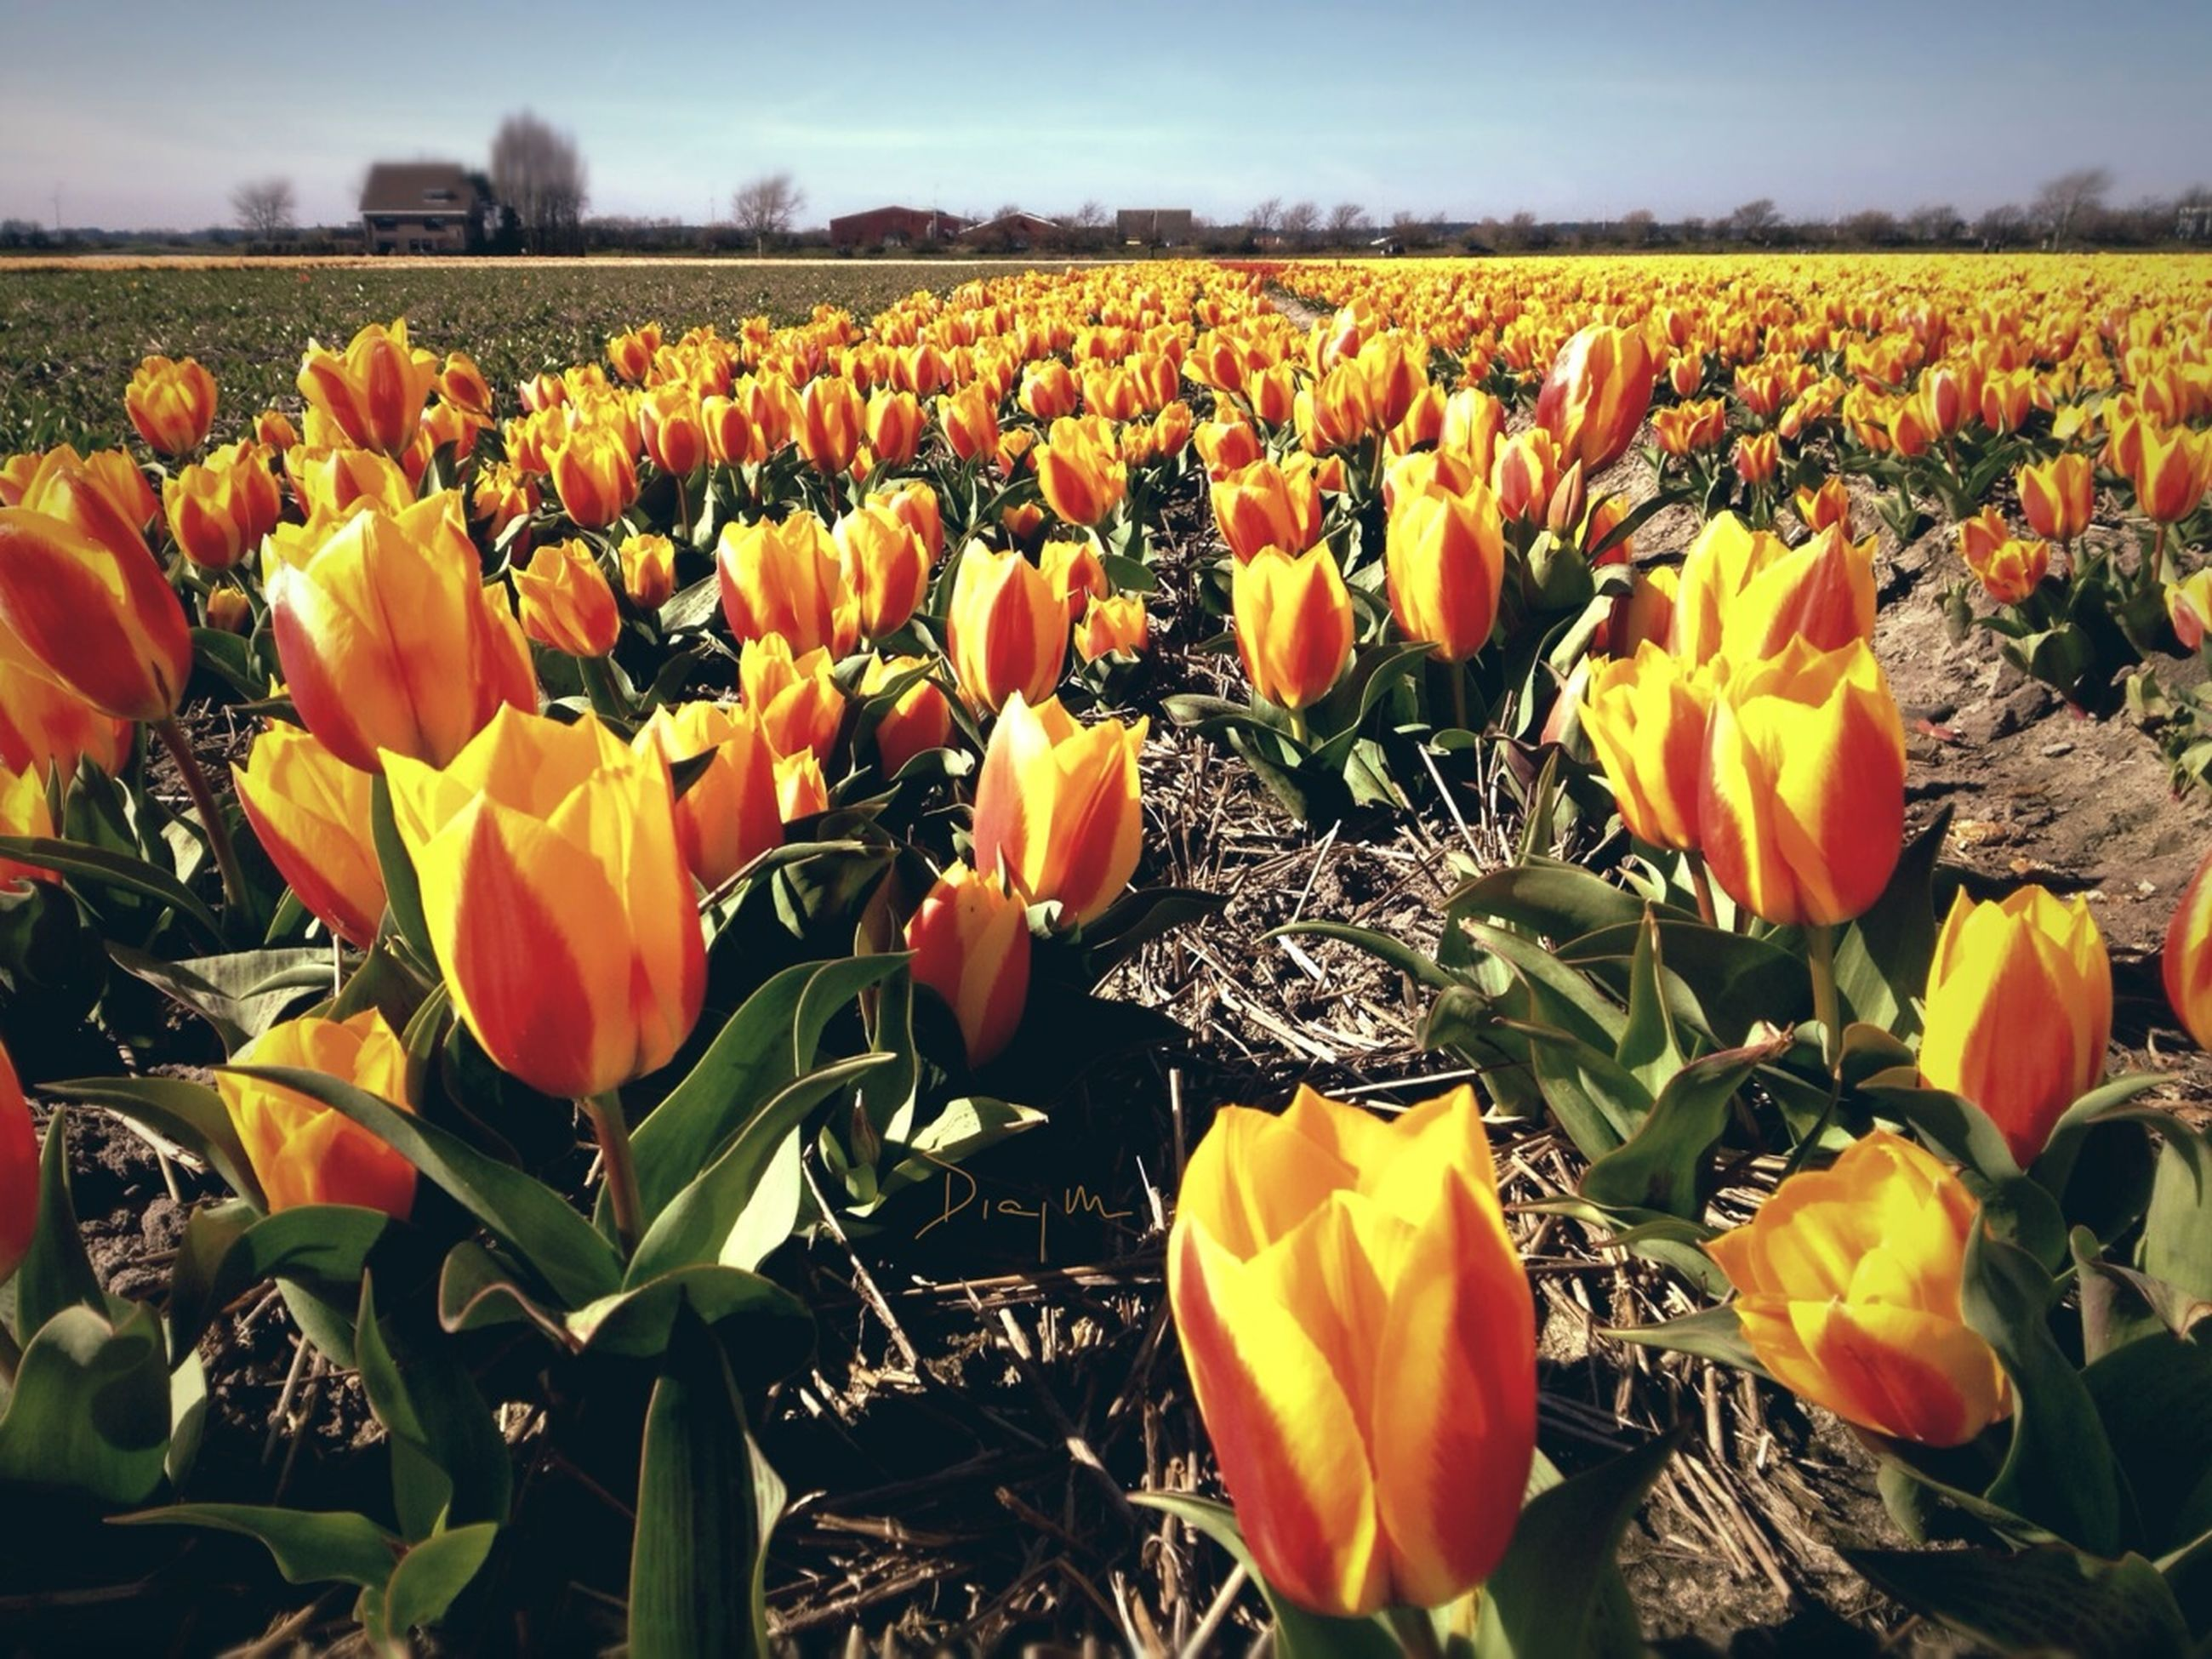 flower, freshness, field, tulip, growth, beauty in nature, agriculture, fragility, rural scene, abundance, nature, petal, yellow, blooming, plant, farm, flower head, flowerbed, landscape, orange color